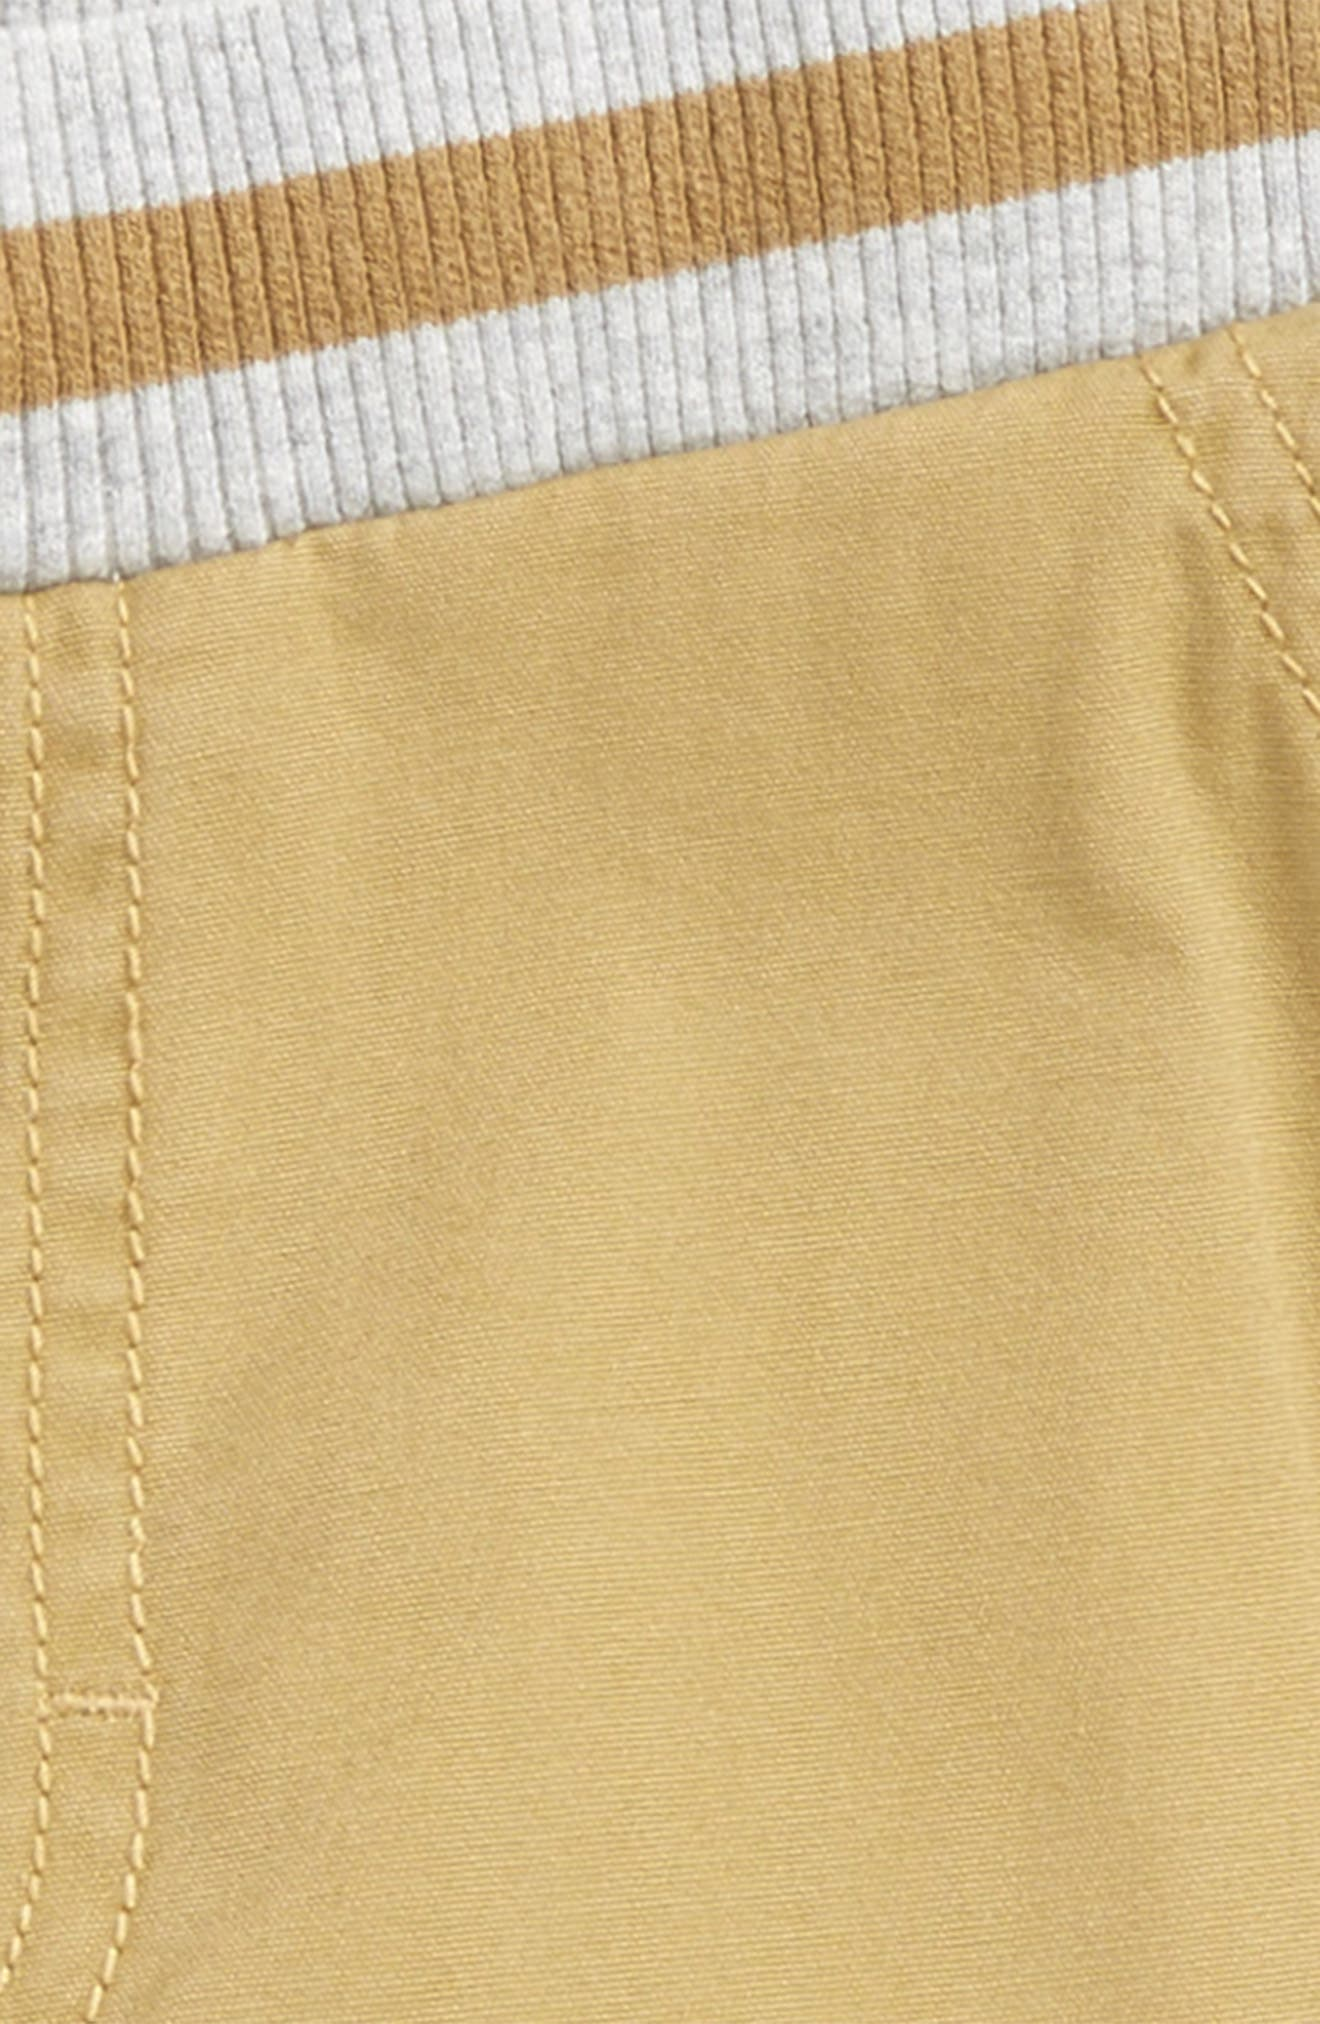 Alternate Image 2  - Tucker + Tate Ribbed Waist Utility Shorts (Toddler Boys & Little Boys)